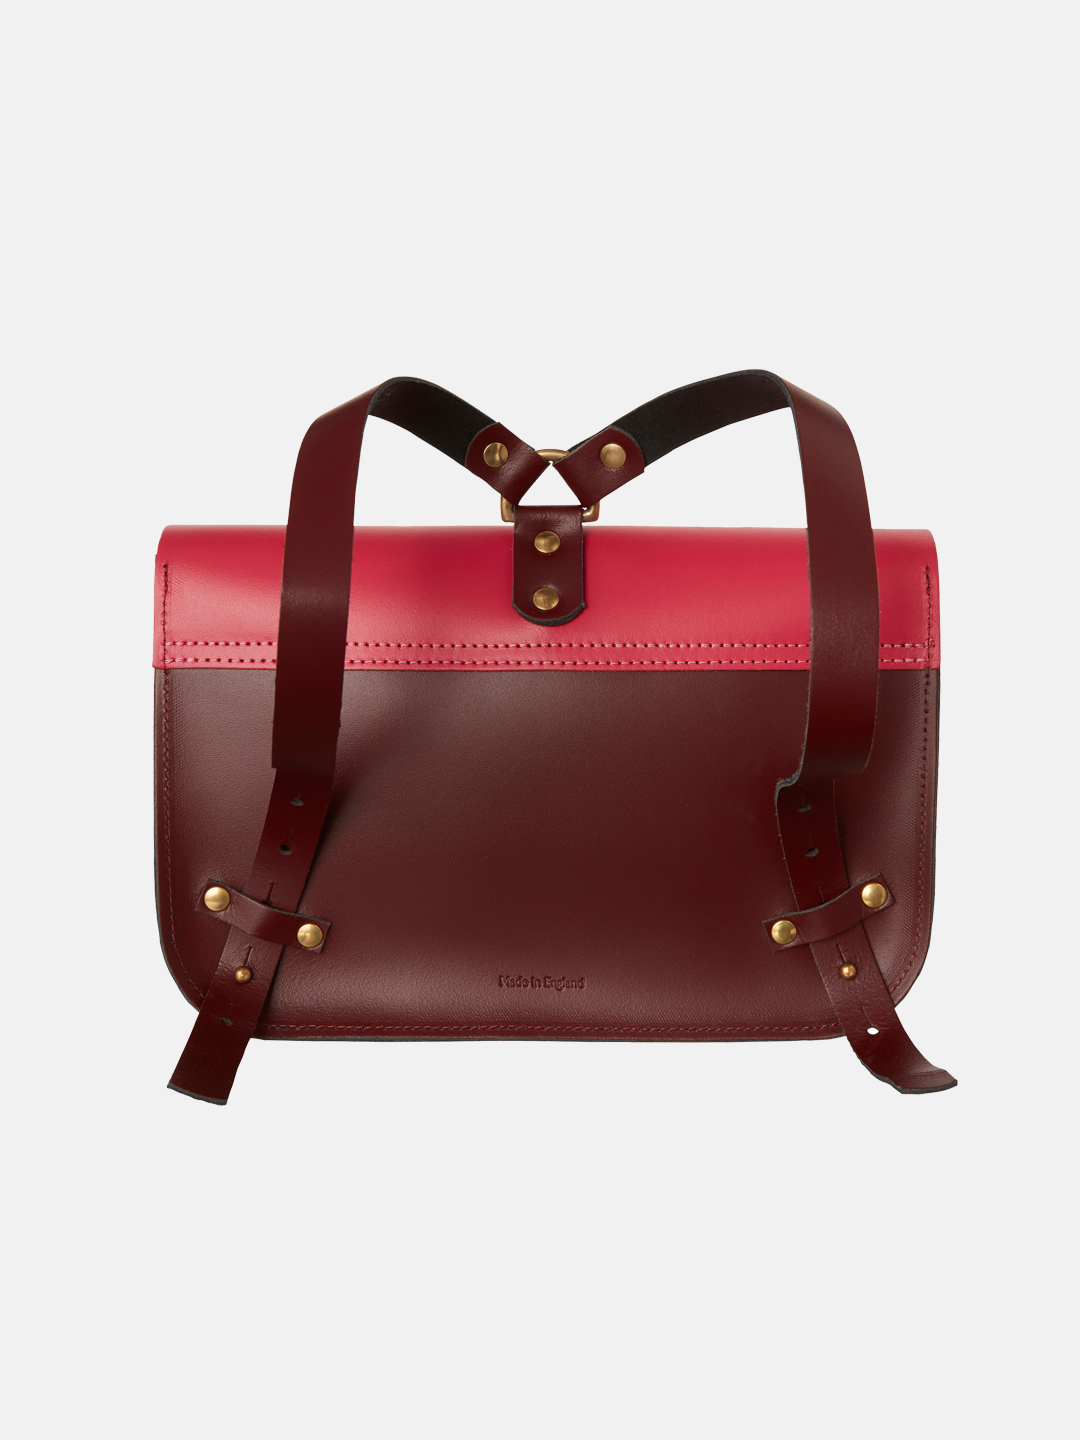 Ellison Satchel - Wine Gum Red & Bright Pink